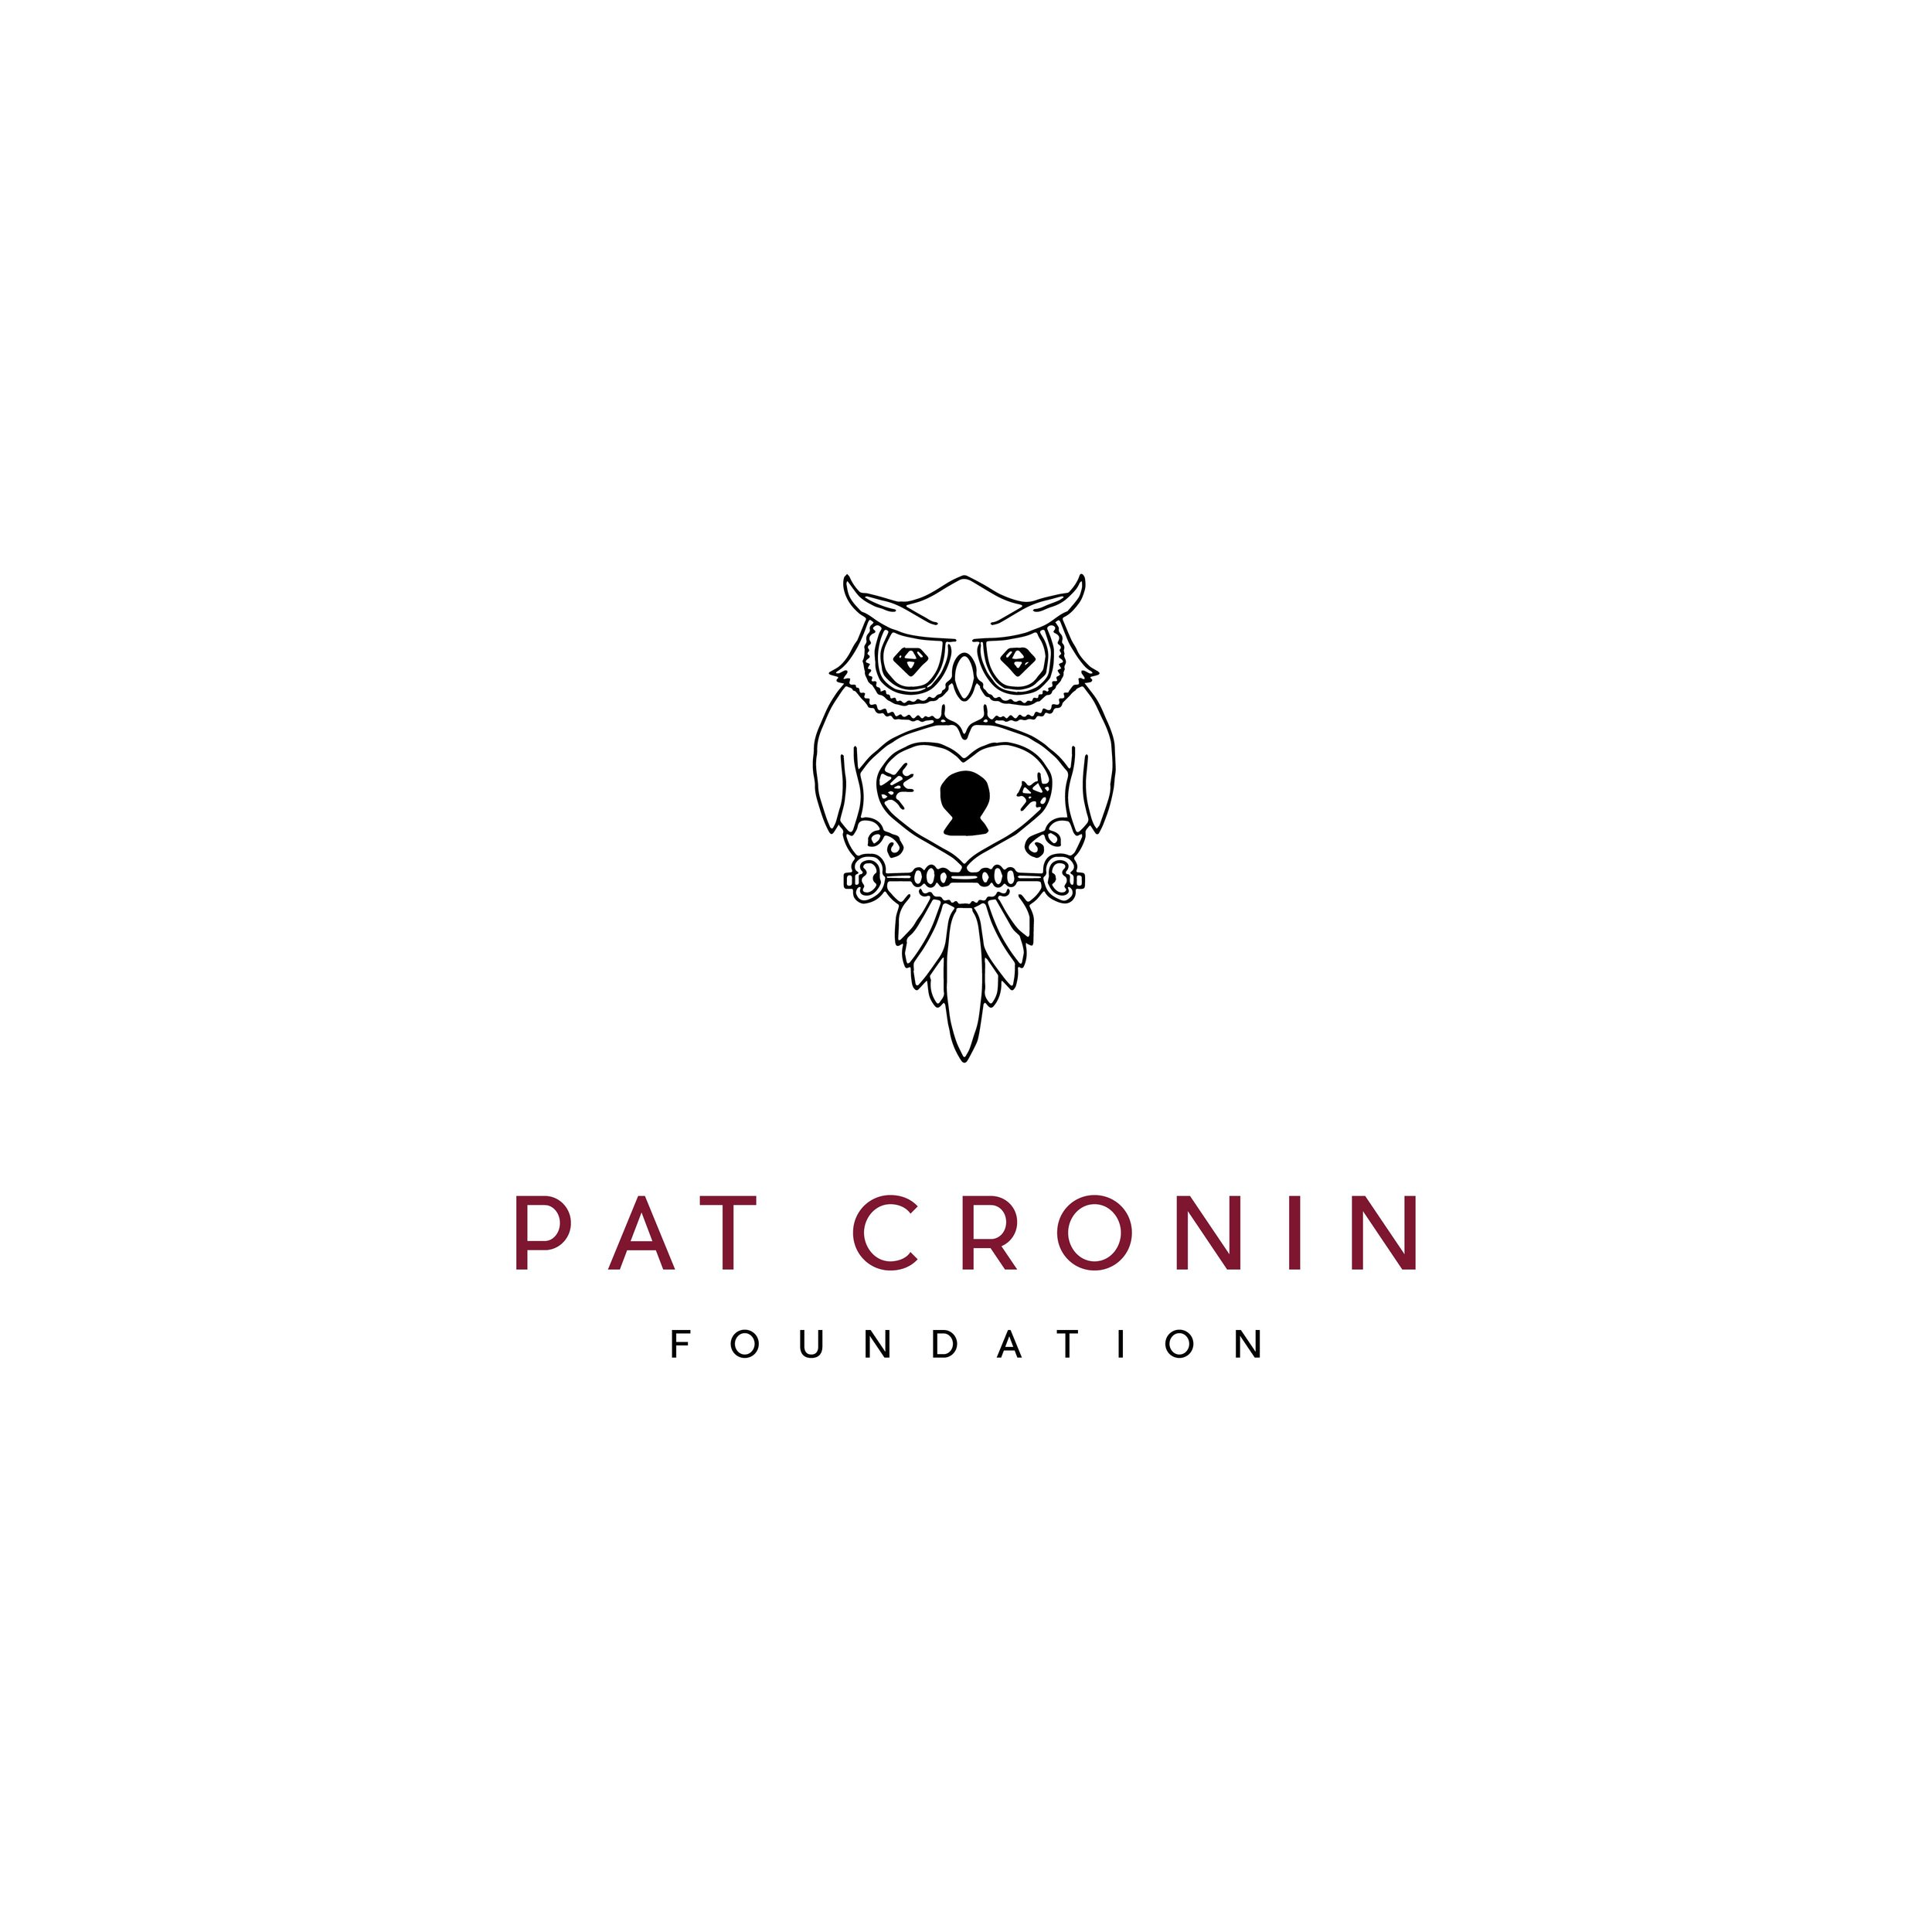 Pat Cronin Foundation - Logo.jpg